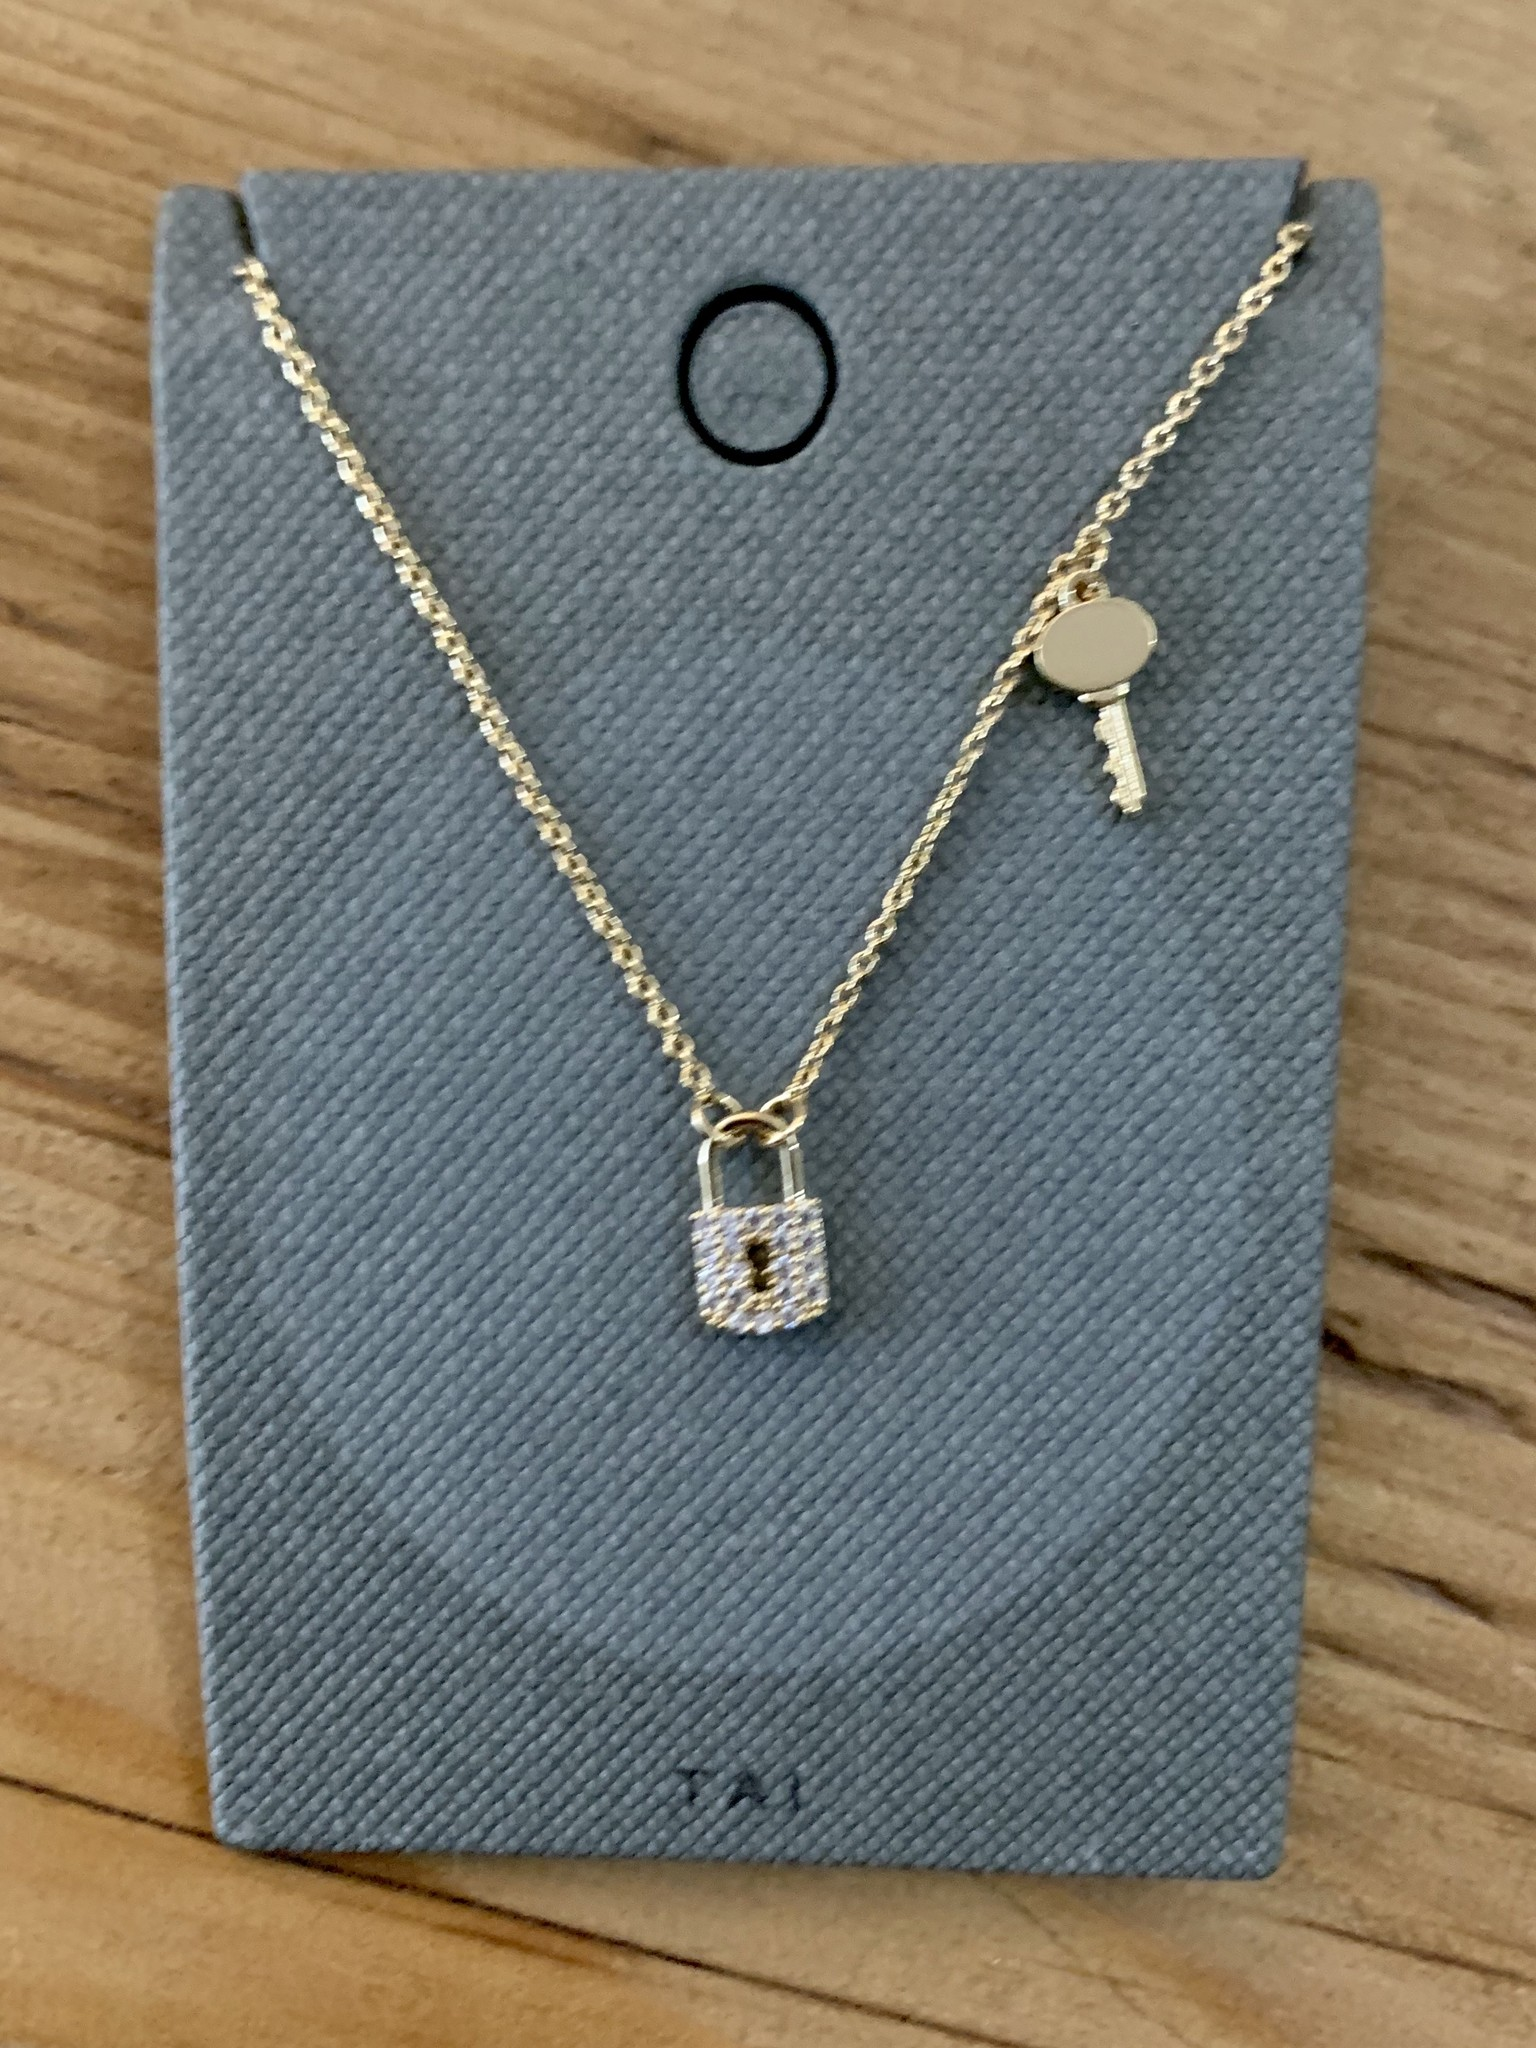 tai Gold Simple Chain w/ Gold Key Charm